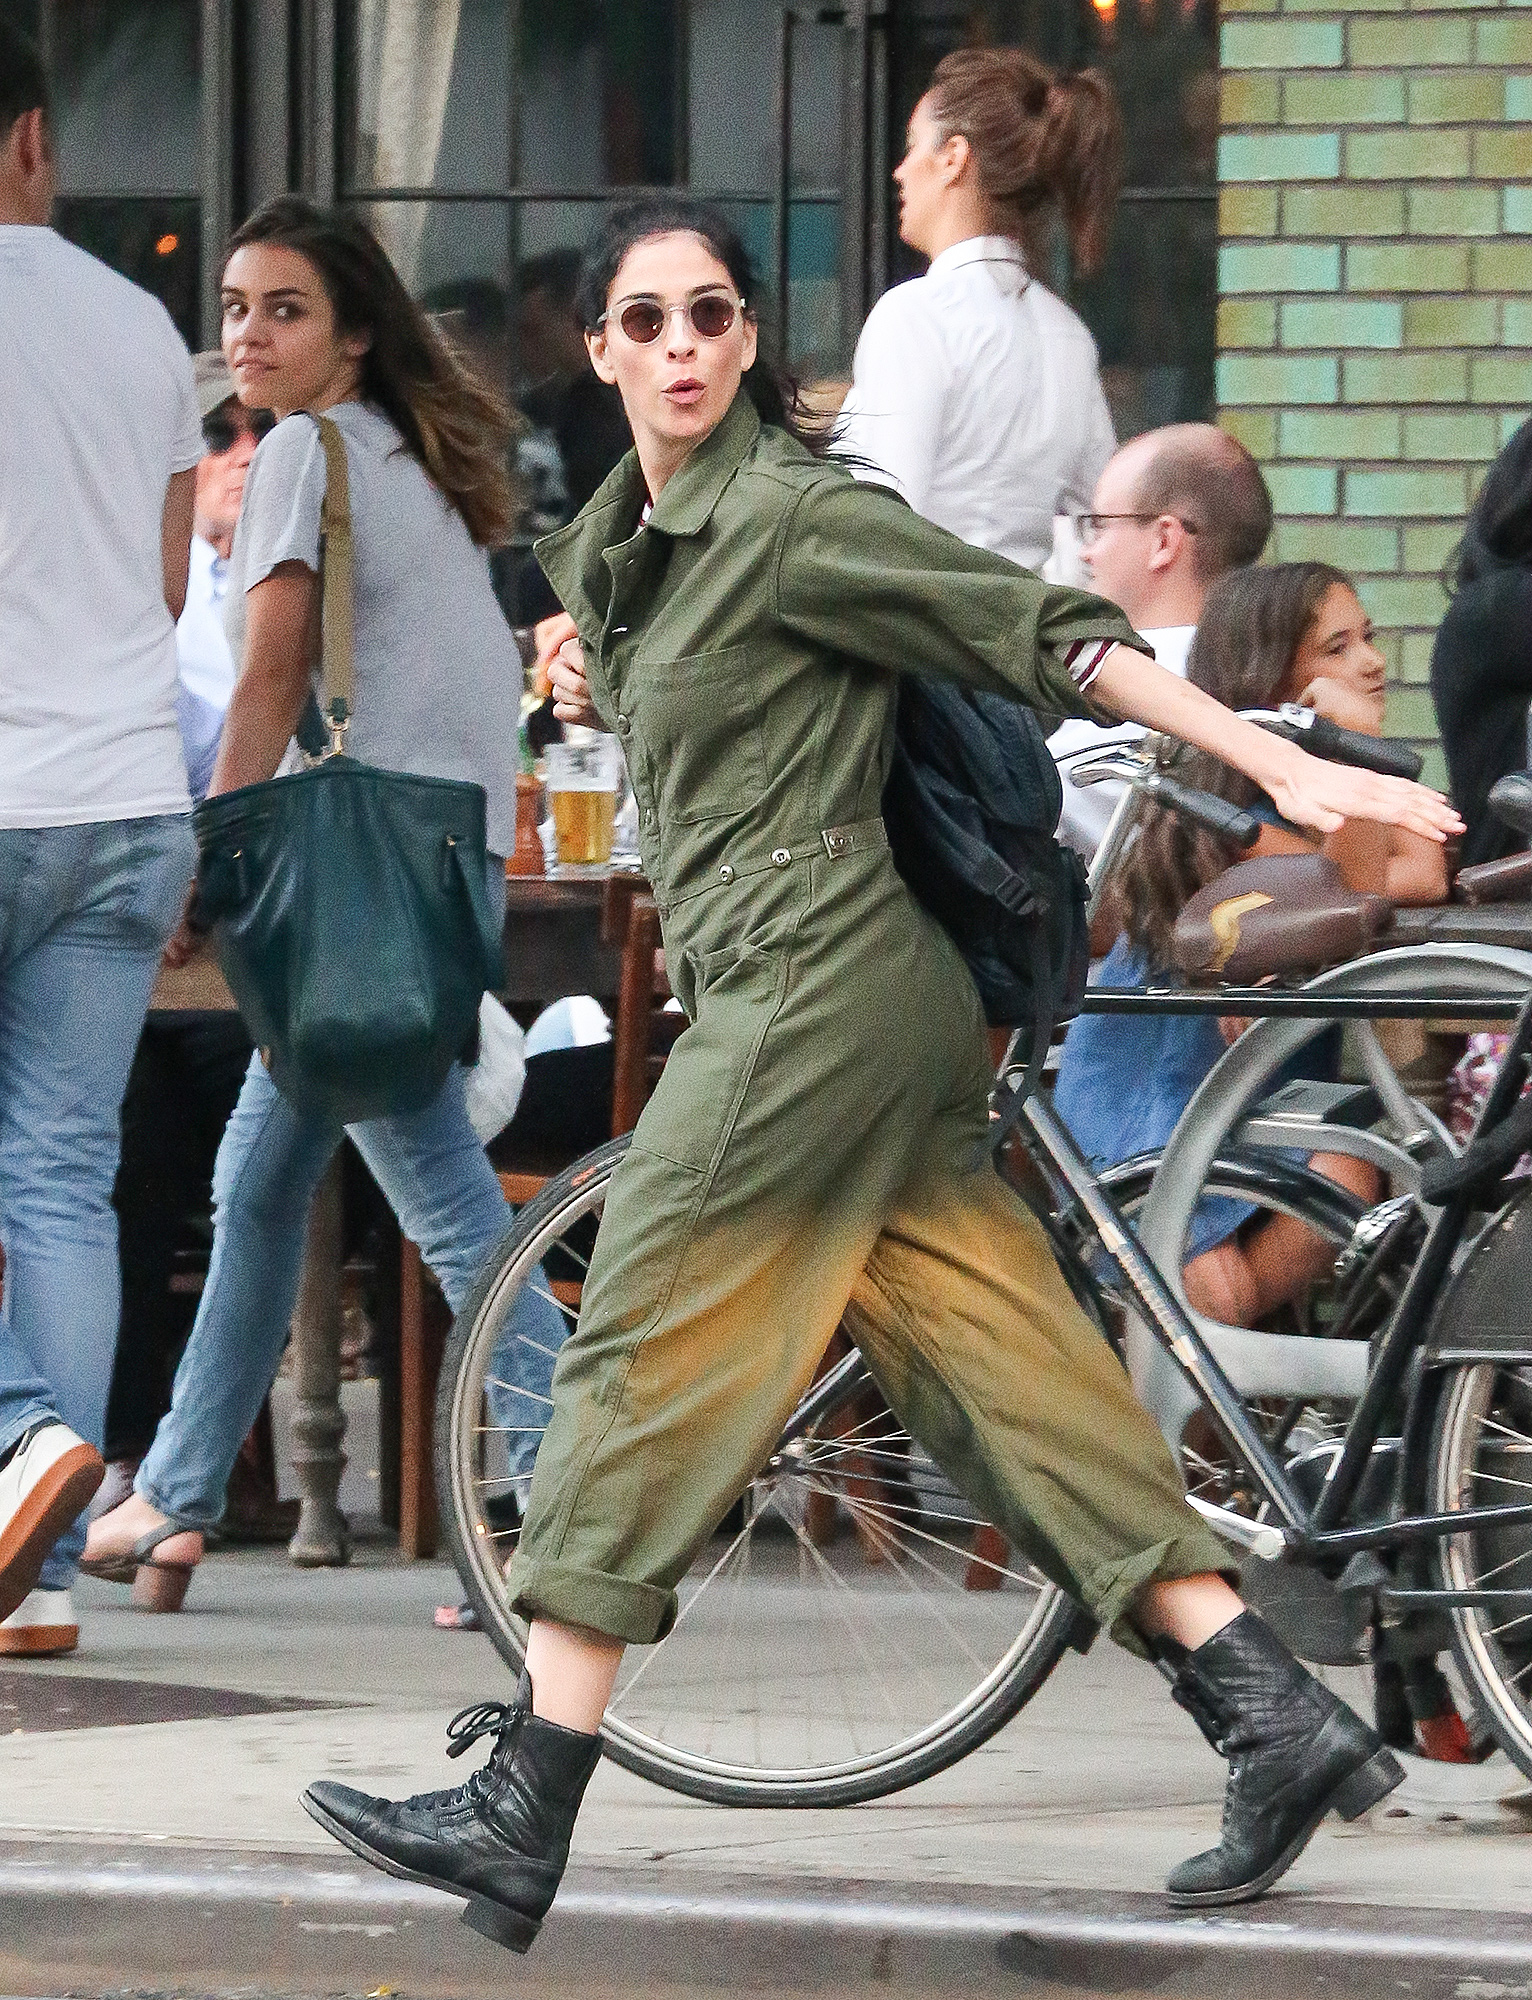 EXCLUSIVE: Sarah Silverman Leaves Her Boyfriend Michael Sheen in the Dust as She Chases Down a Taxi in NYC